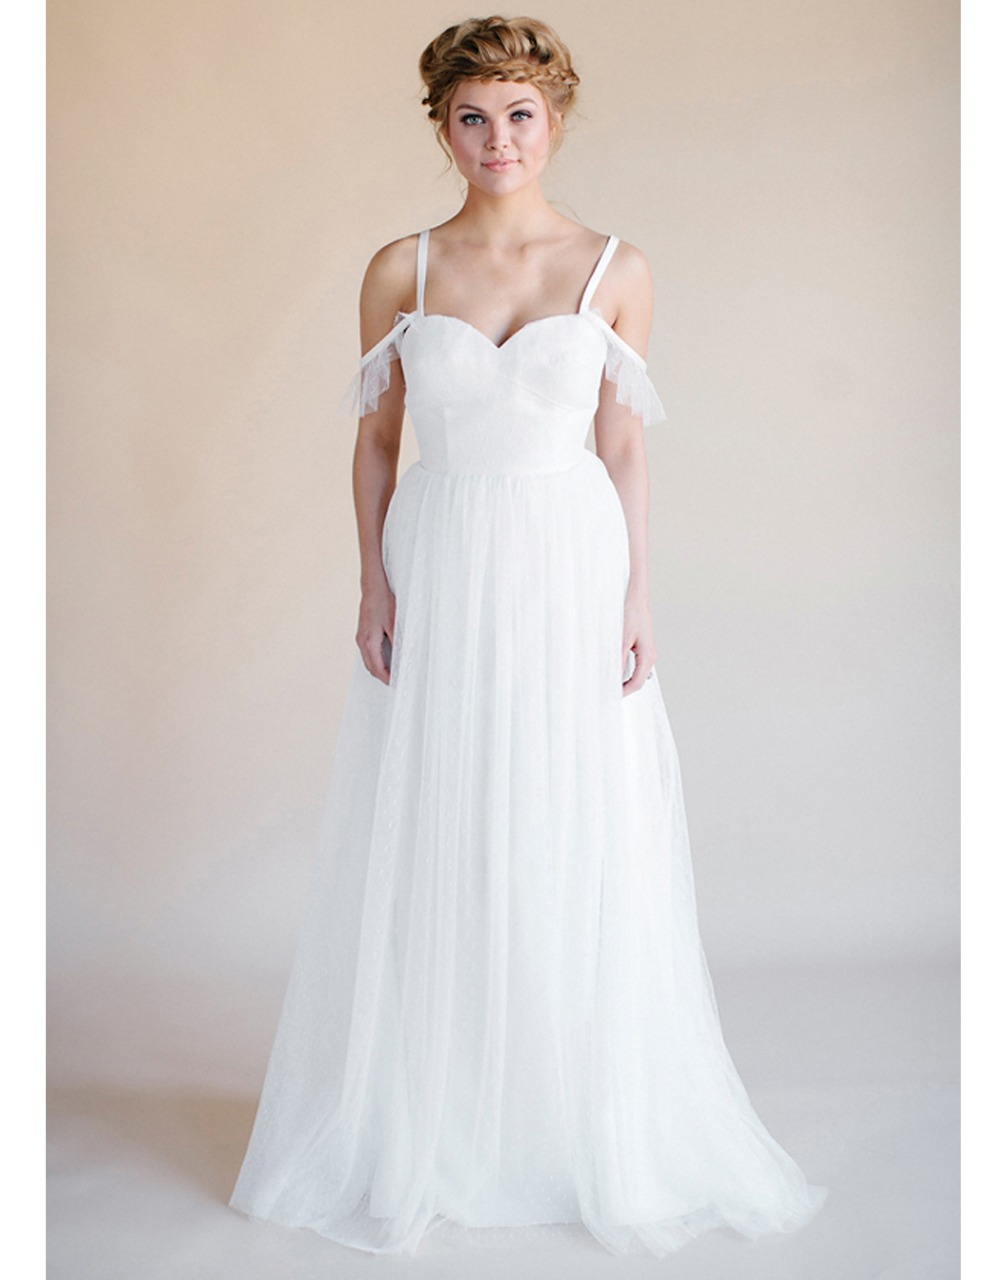 Plus size boho beach wedding dress criss cross back 2015 for Beach wedding dresses for plus size